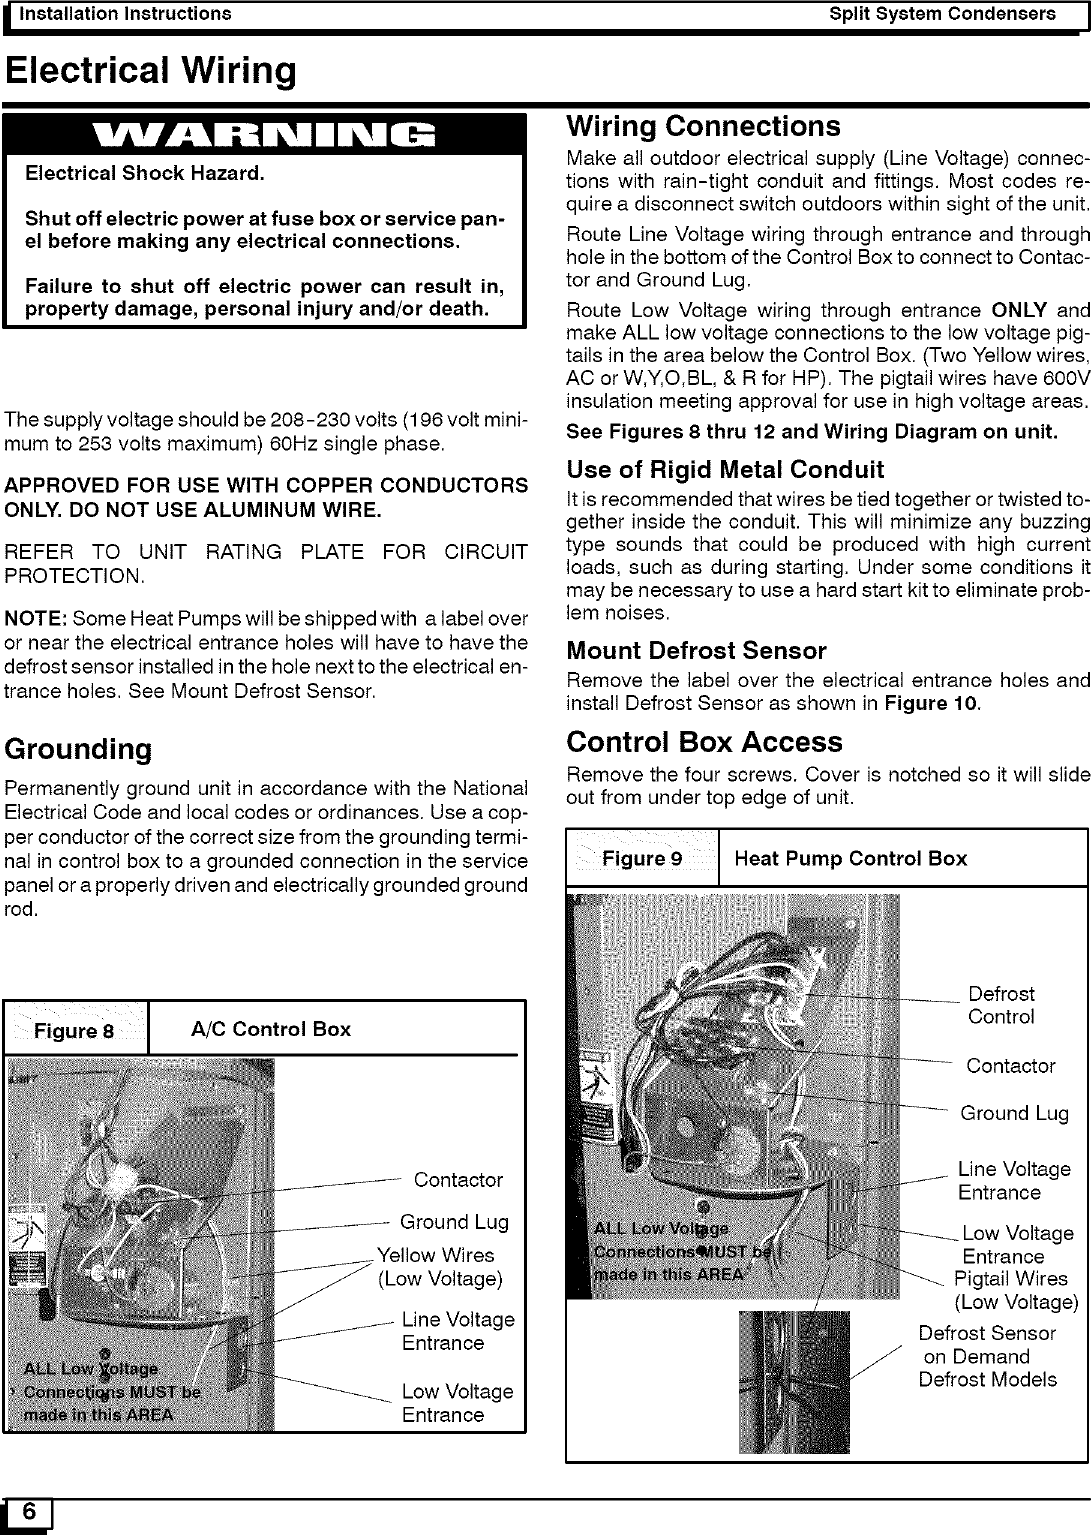 Icp Air Conditioner Heat Pumpoutside Unit Manual L0522786 Ac Control Wiring Page 6 Of 12